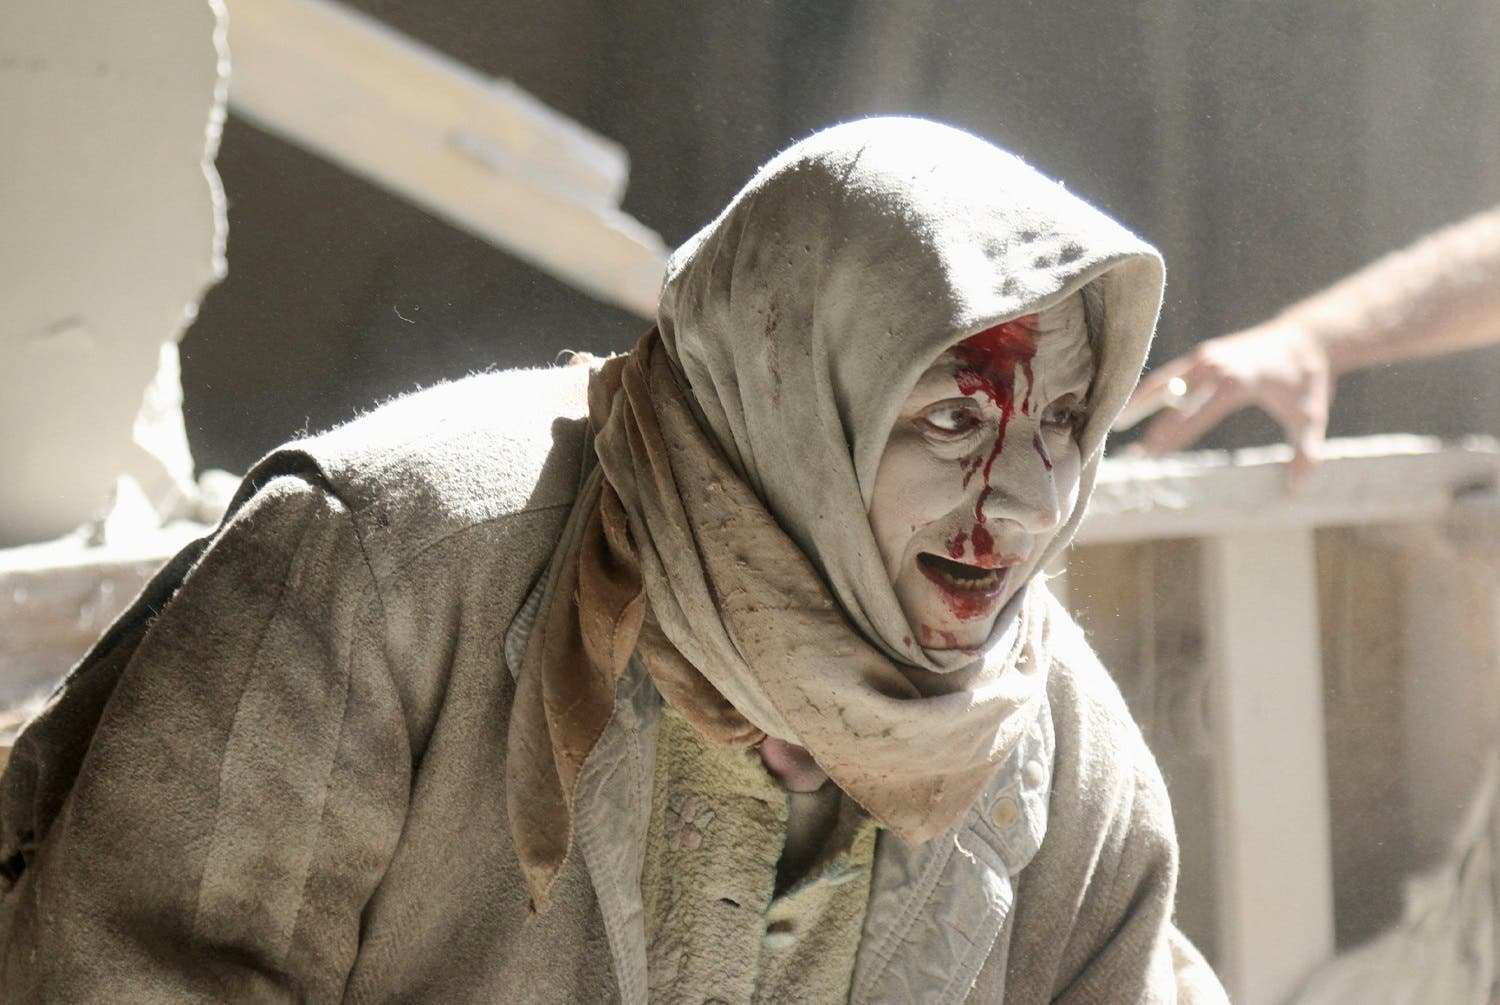 An injured woman reacts at a site hit by airstrikes in the rebel held area of Old Aleppo. (Reuters)